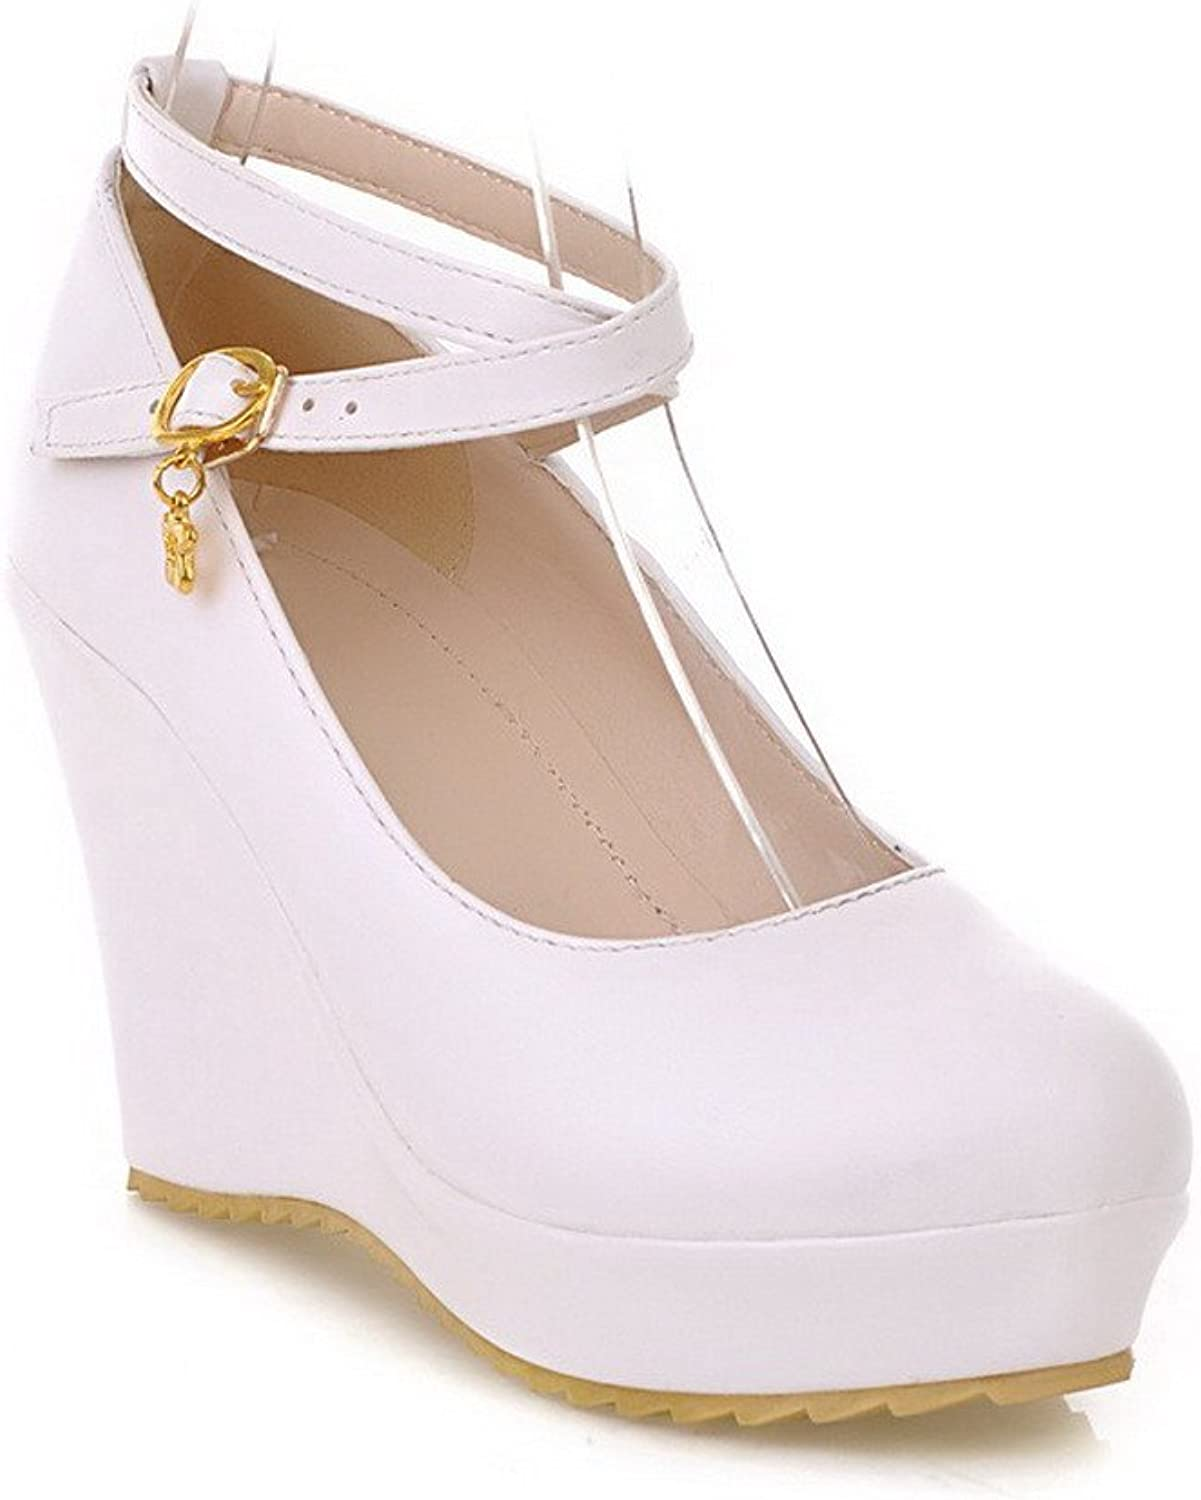 WeiPoot Women's Solid Round Closed Toe Soft Material PU Pumps-shoes, White, 38